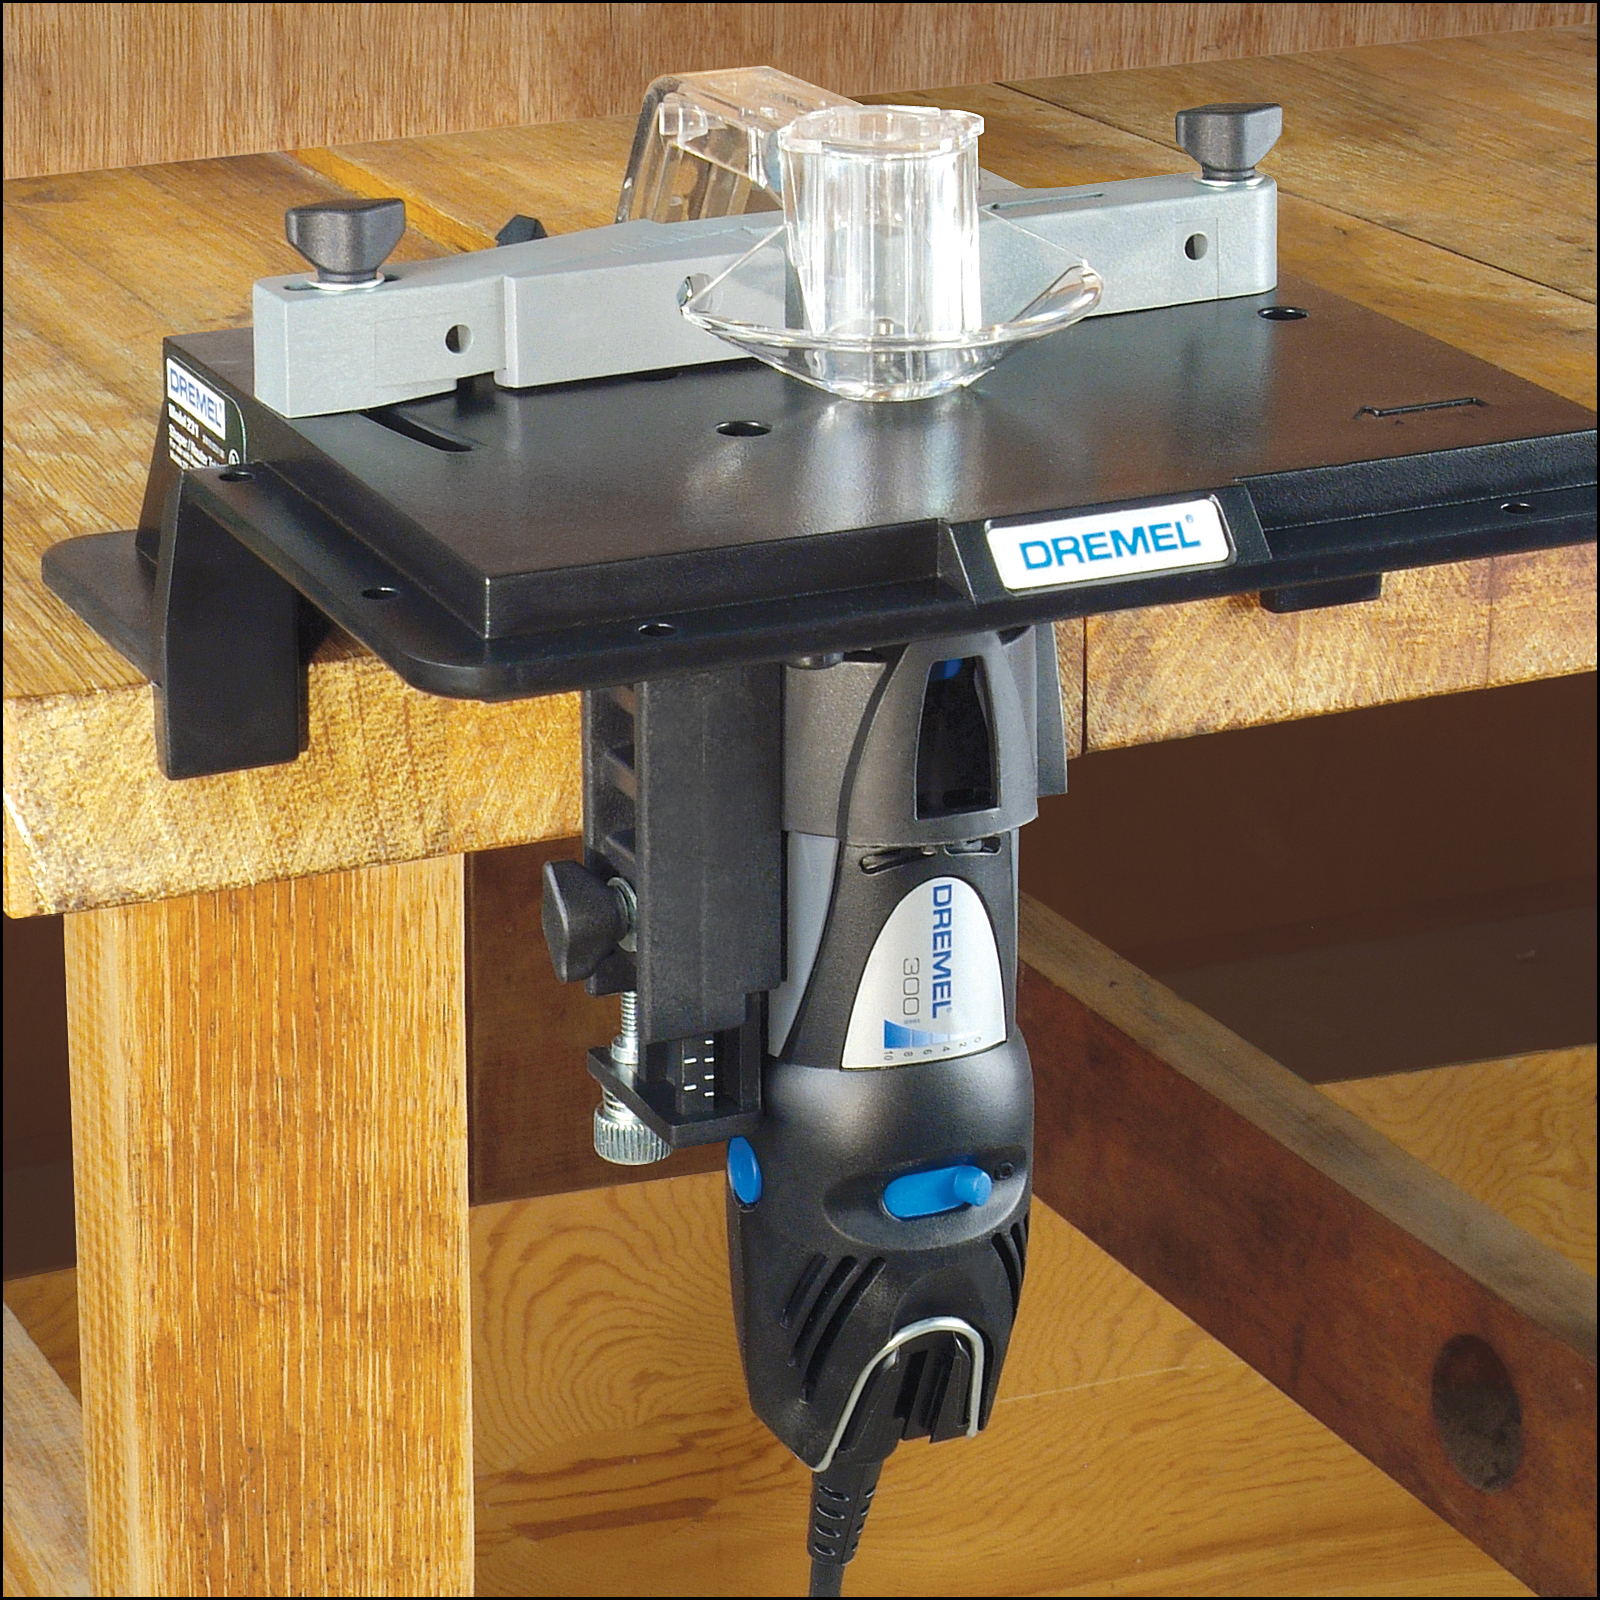 Dremel Table Saw Attachment